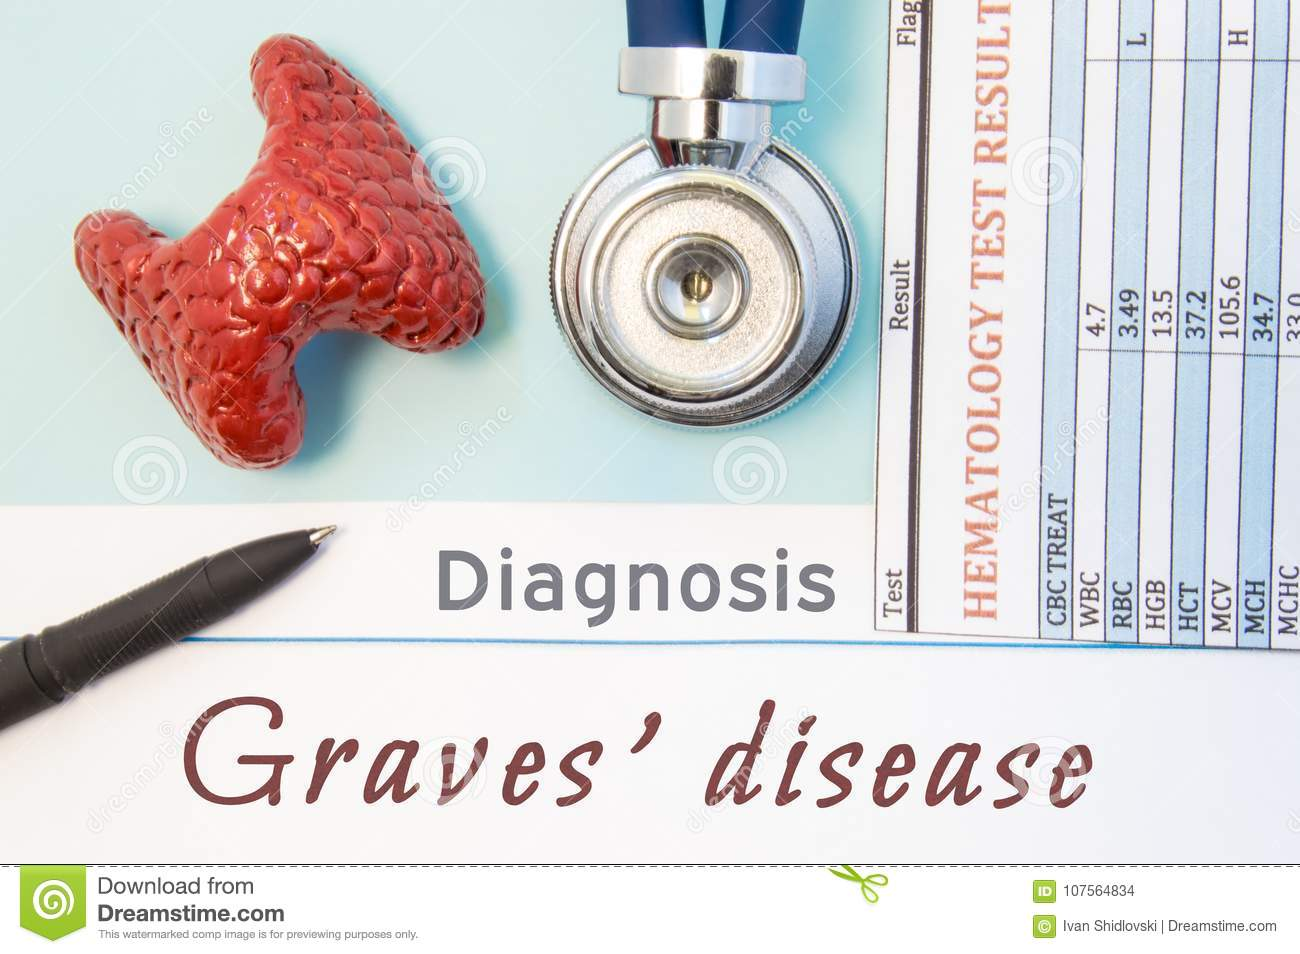 Endocrinology diagnosis Graves` disease. Figure of thyroid gland, result of laboratory analysis of blood medical stethoscope and b